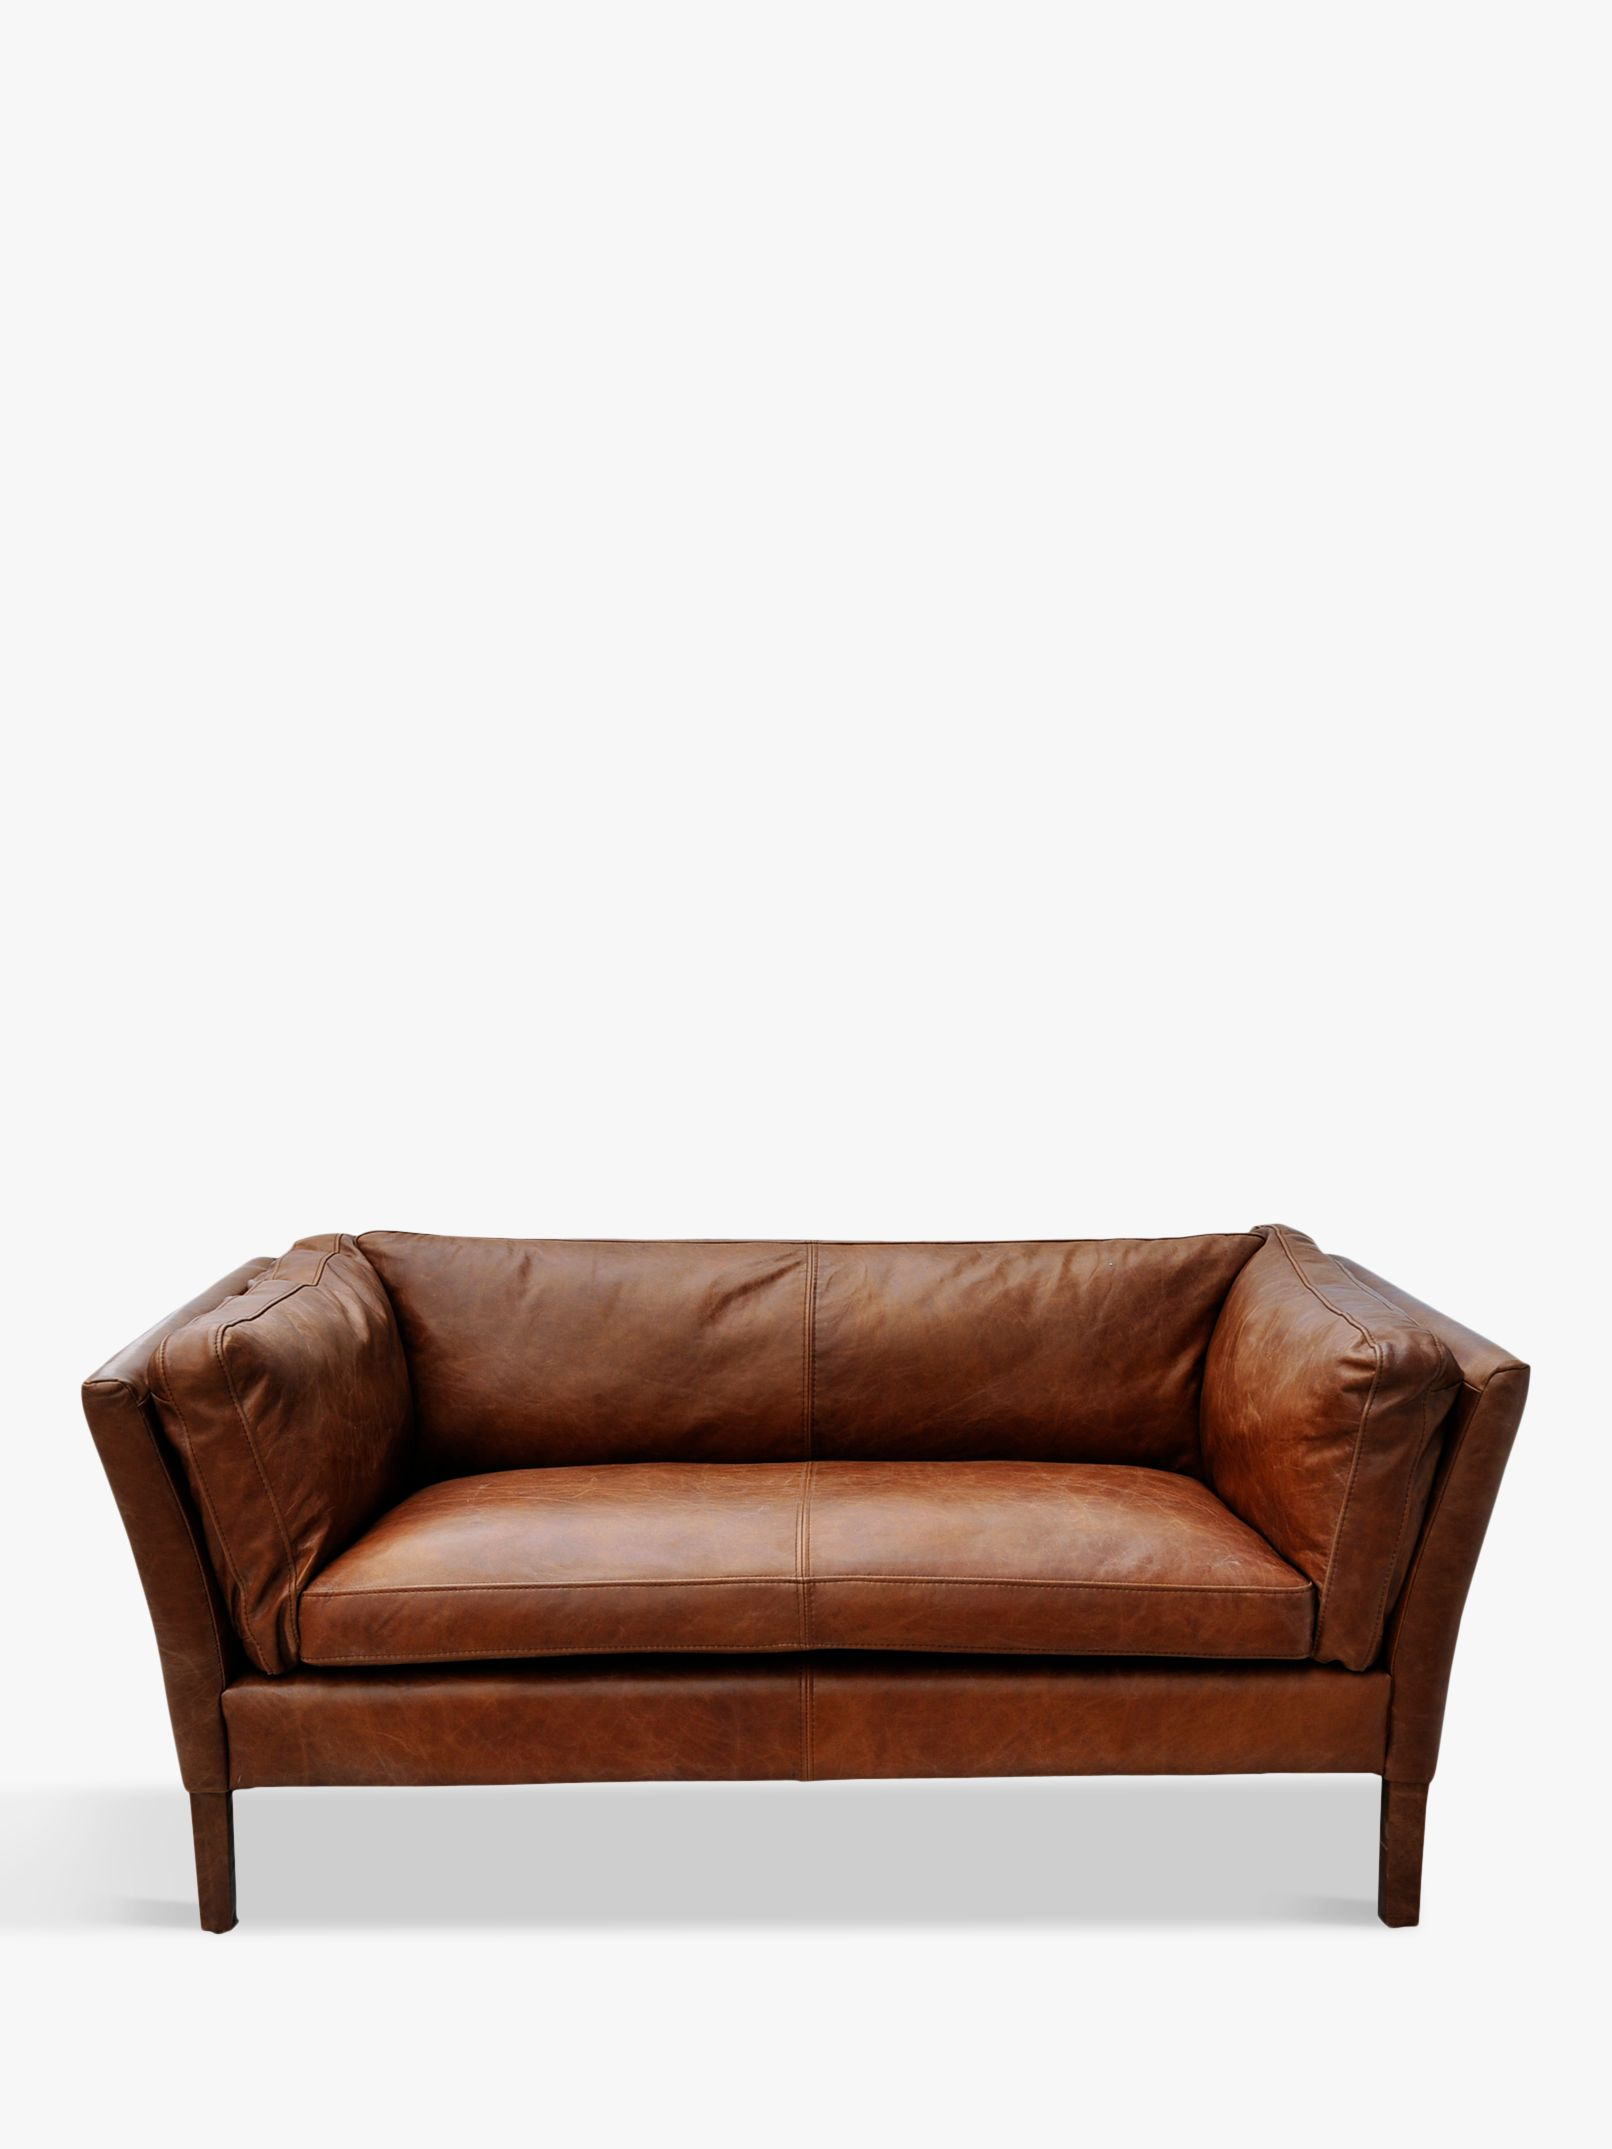 Halo Halo Groucho Small 2 Seater Leather Sofa